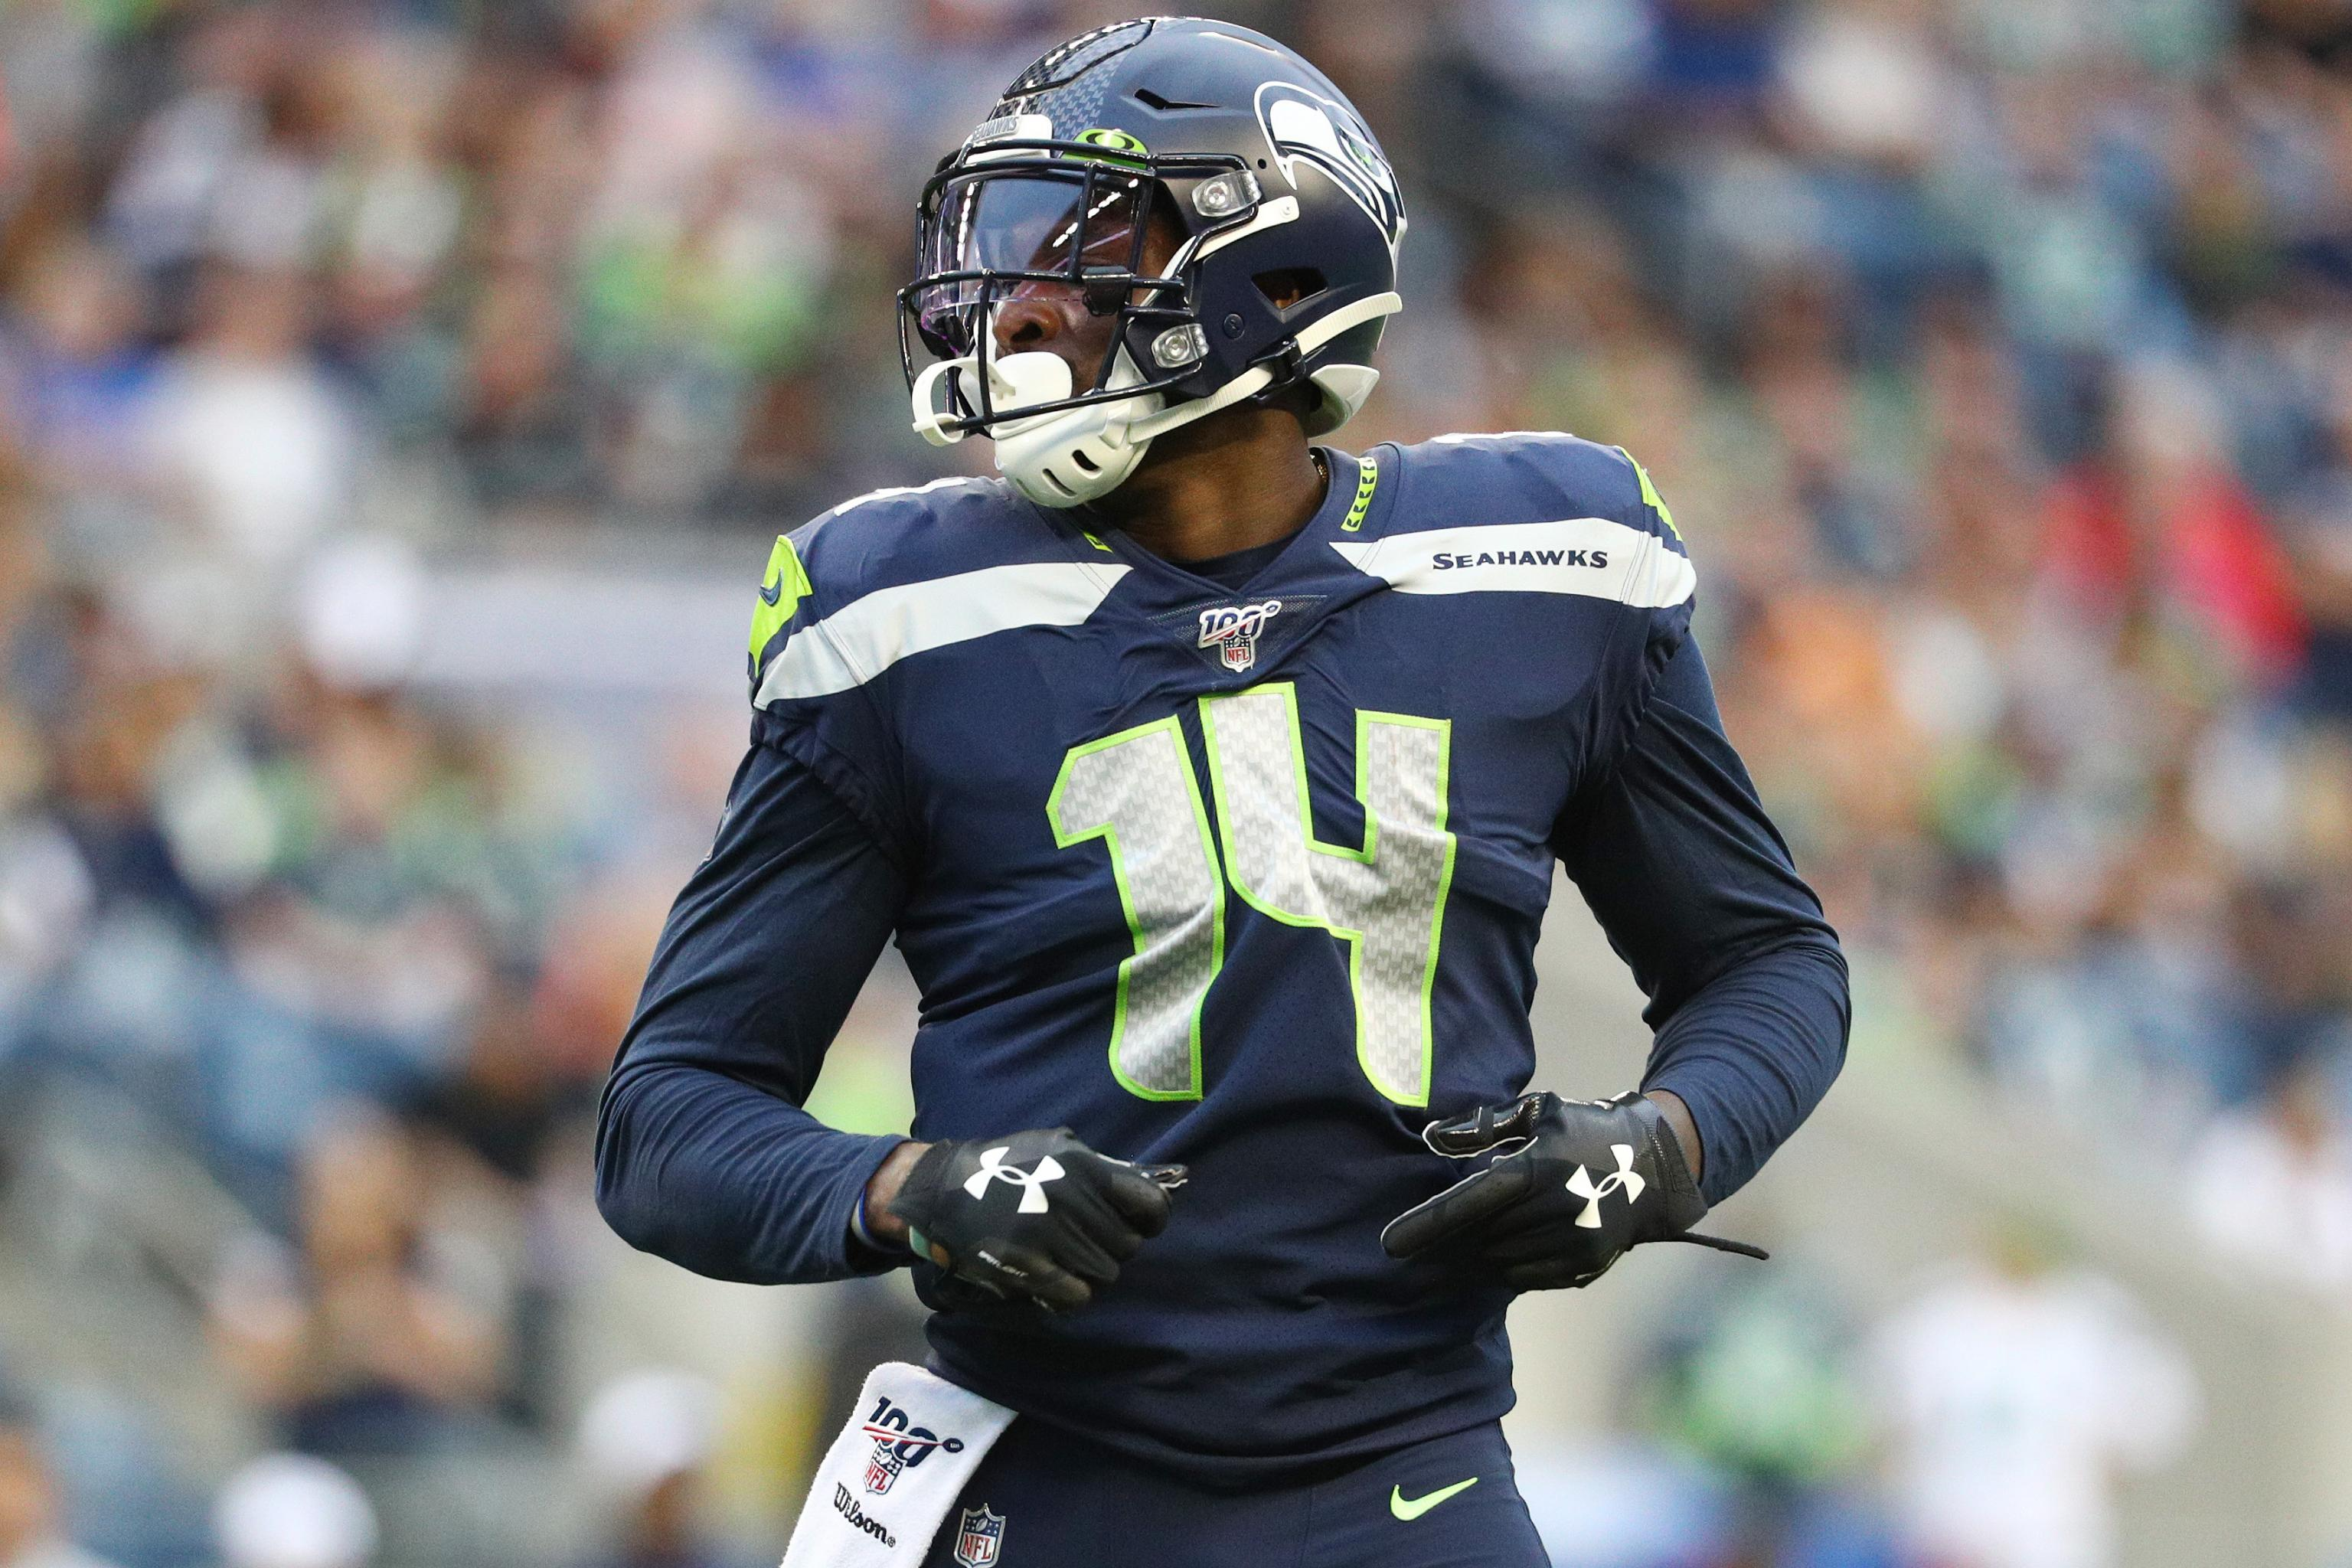 Seahawks WR DK Metcalf Expected to Return Soon After ...